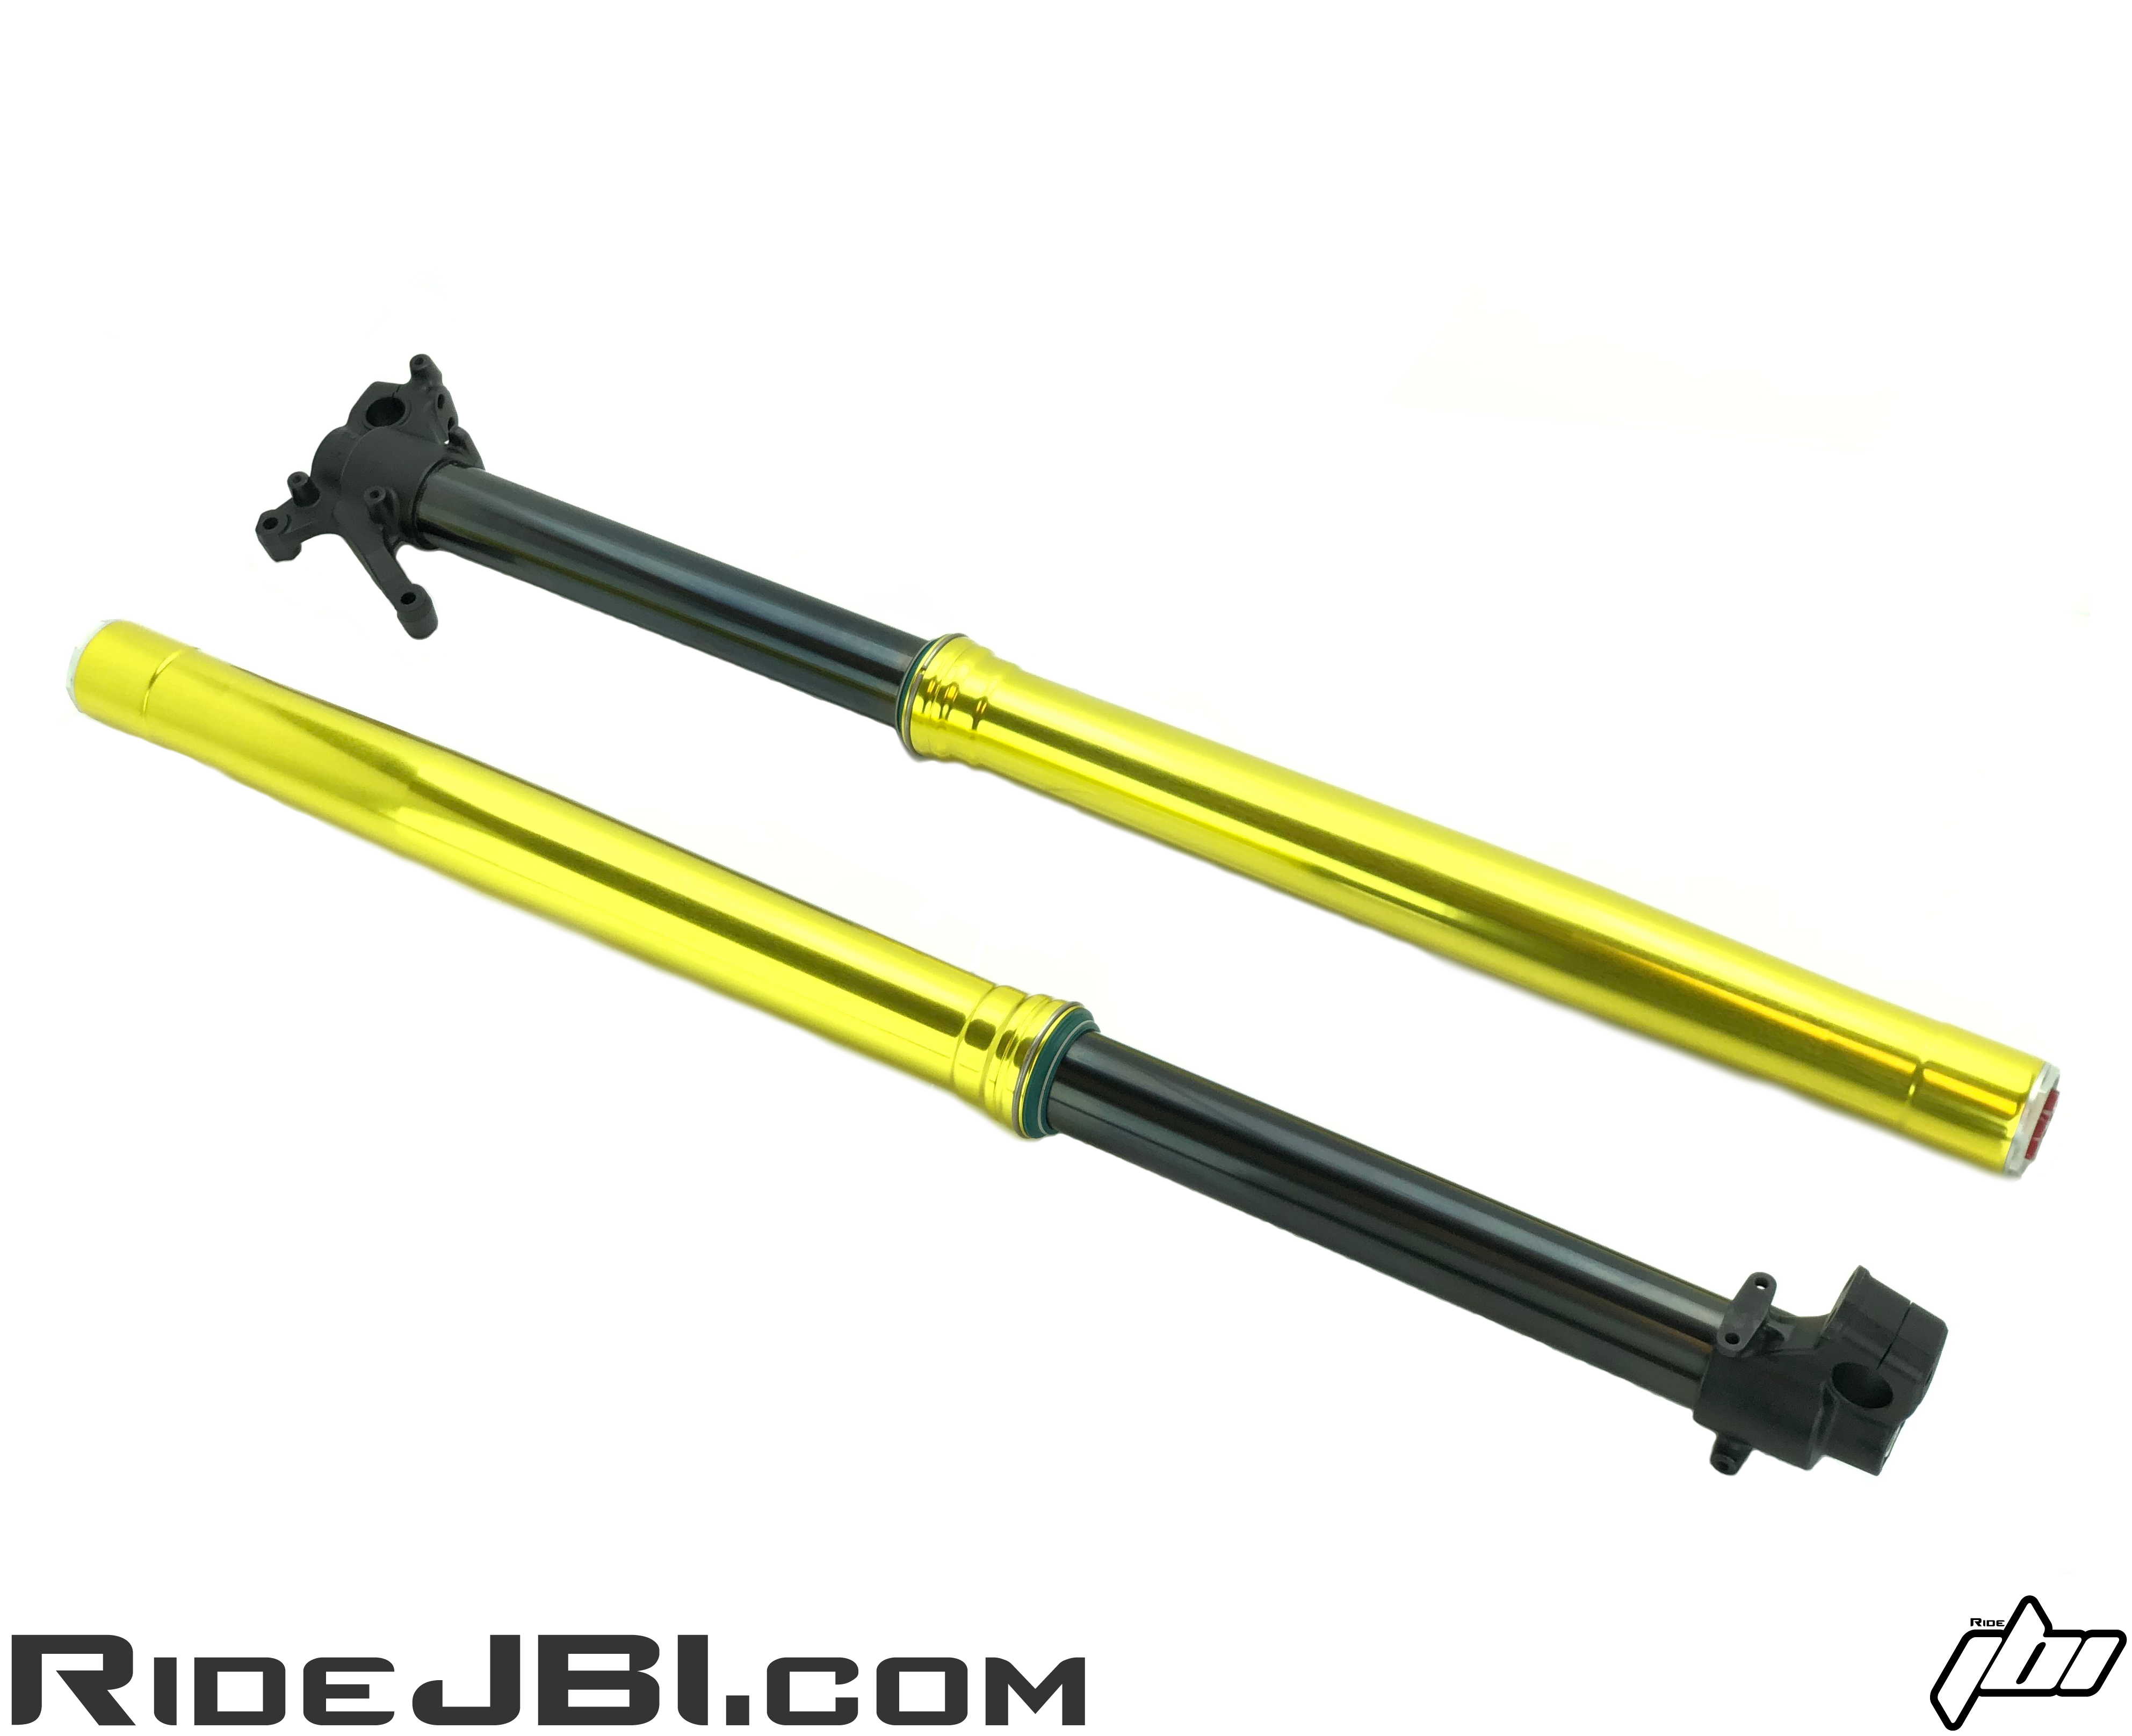 JBI Suspension hard anodize outer fork tubes